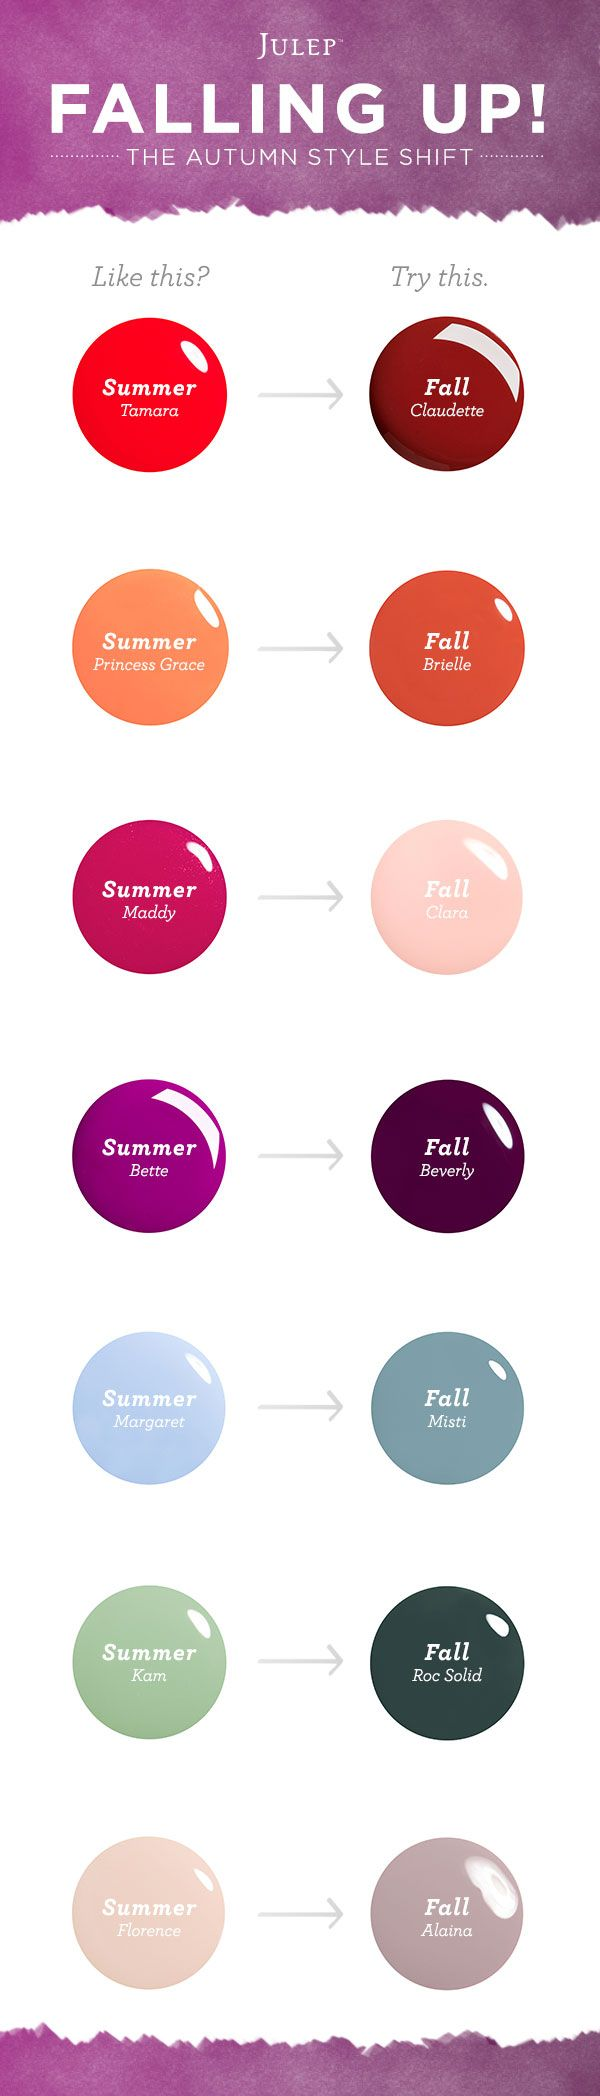 Seniors!  Check out the new fall colors for your photoshoot!  Sooooo pretty :) #julep #julepmaven #fallnails